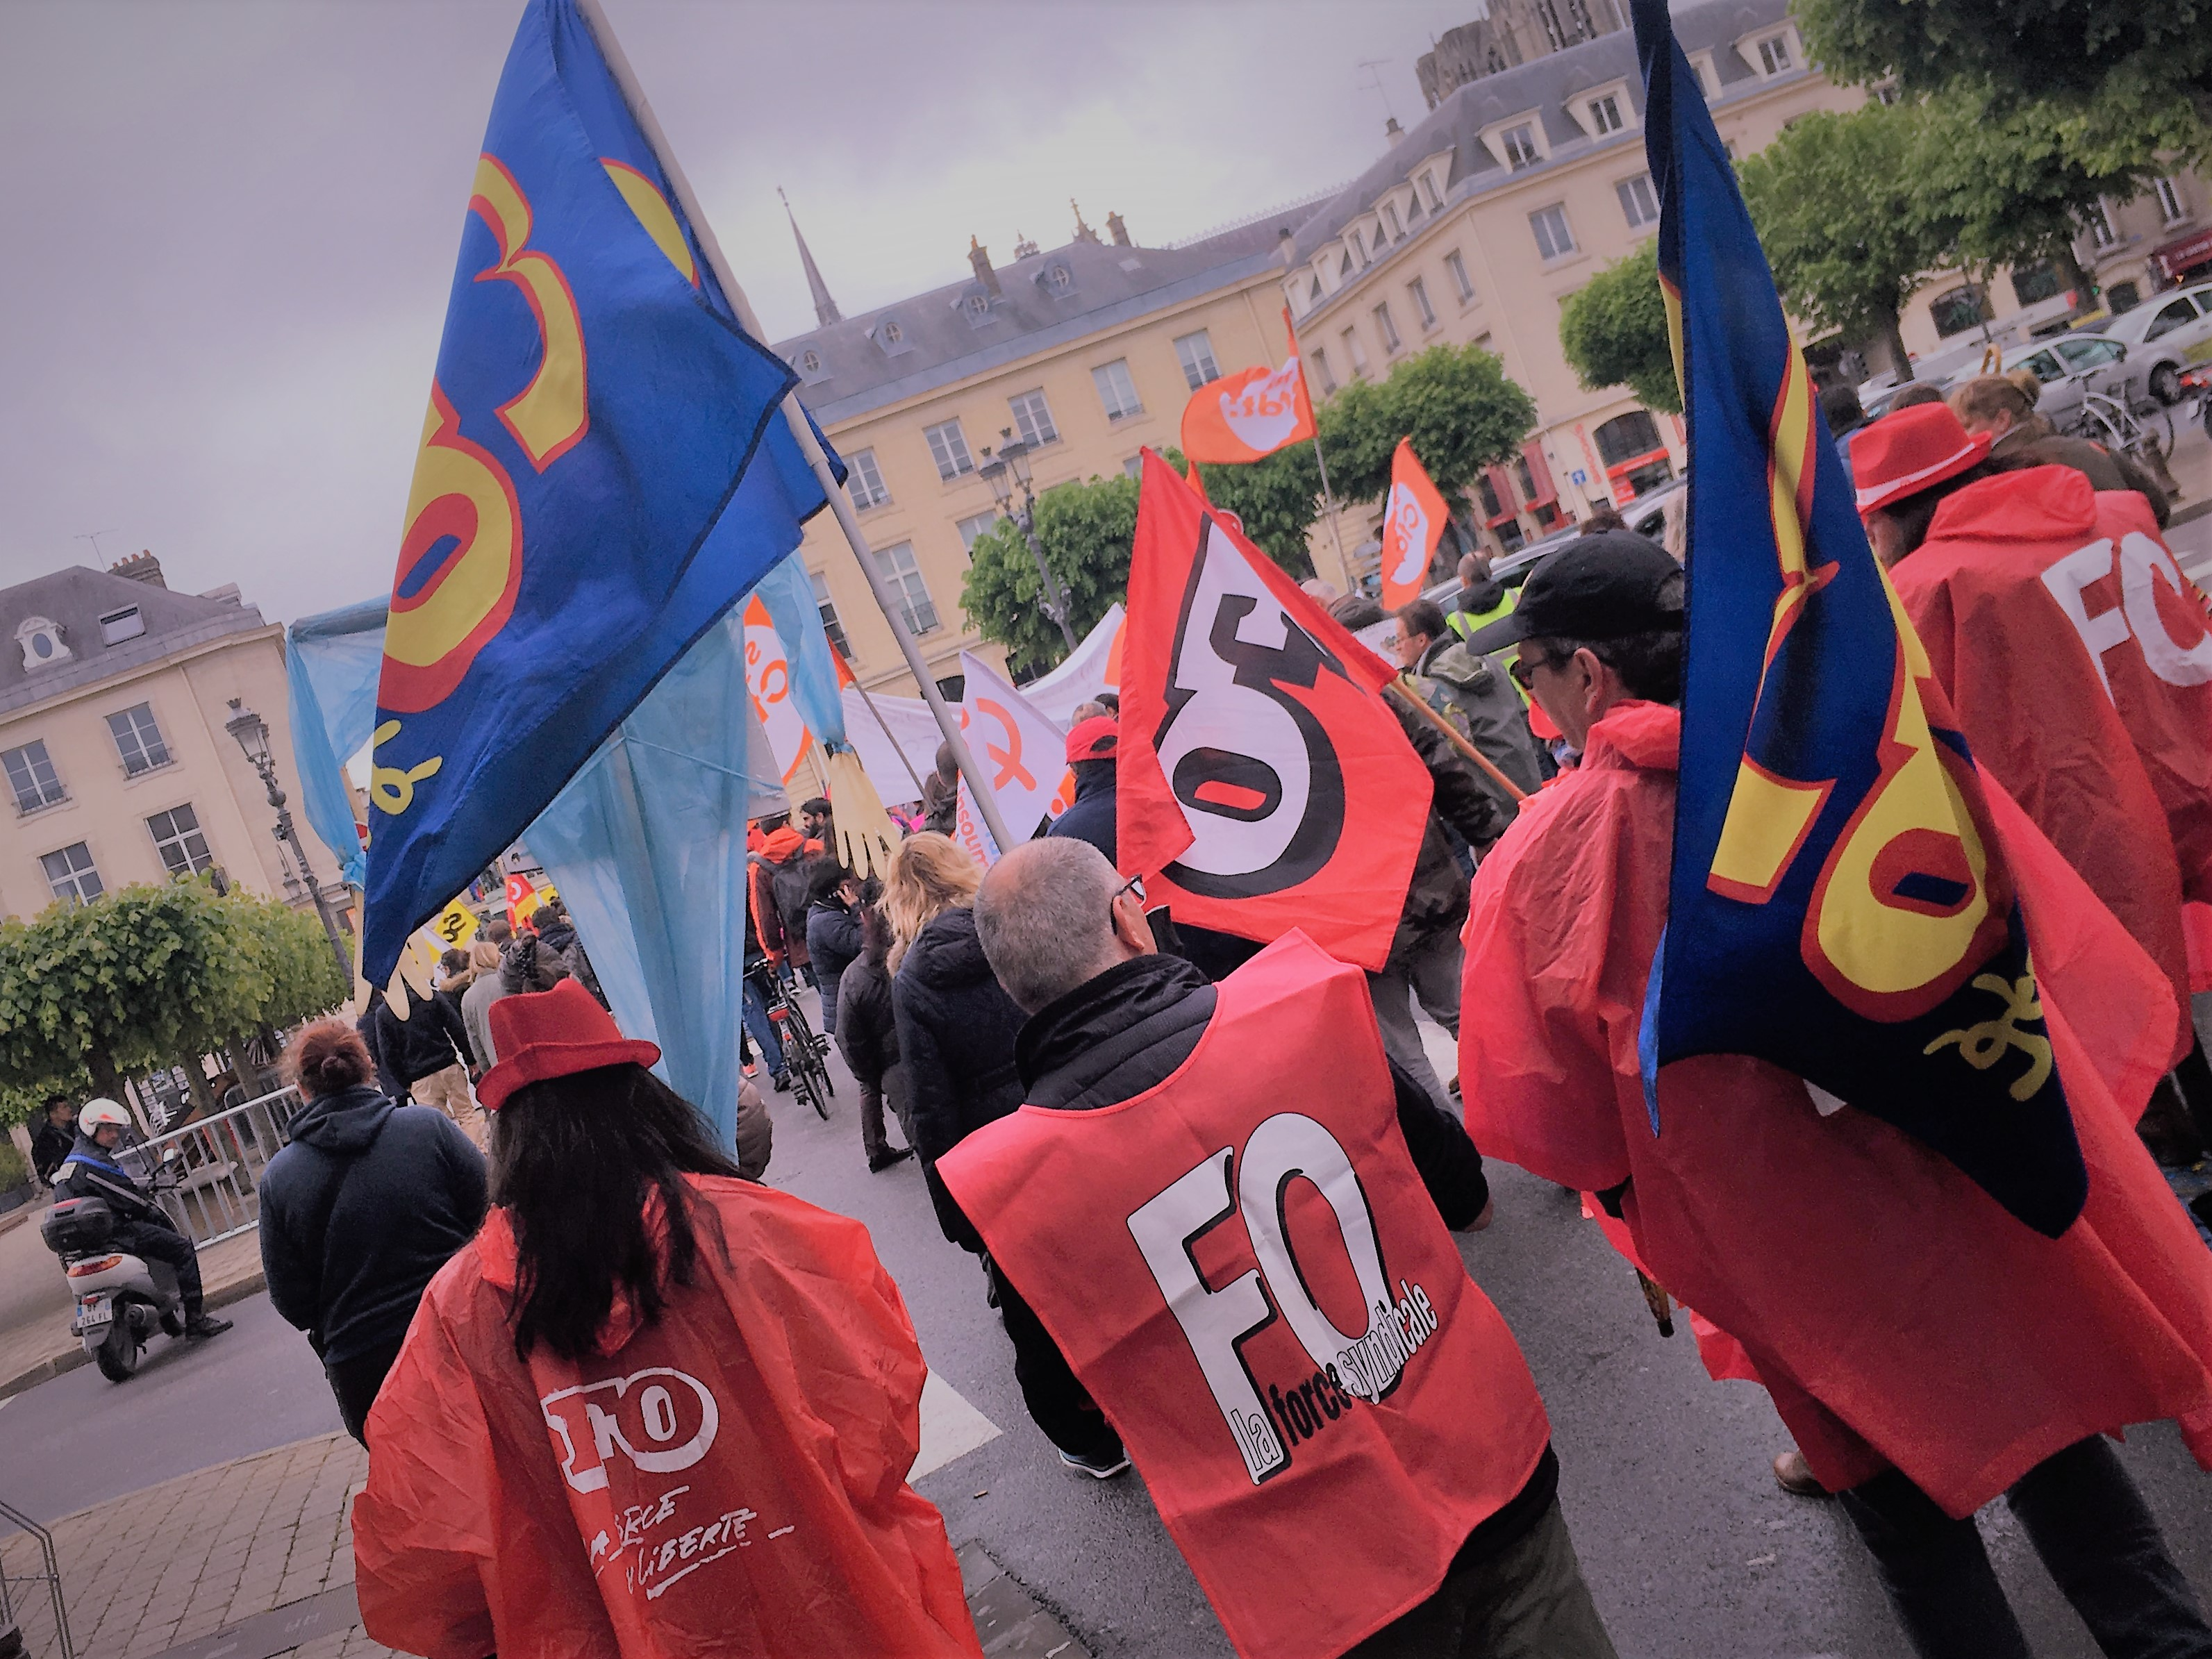 Manifestation à Reims le 9 mai 2019